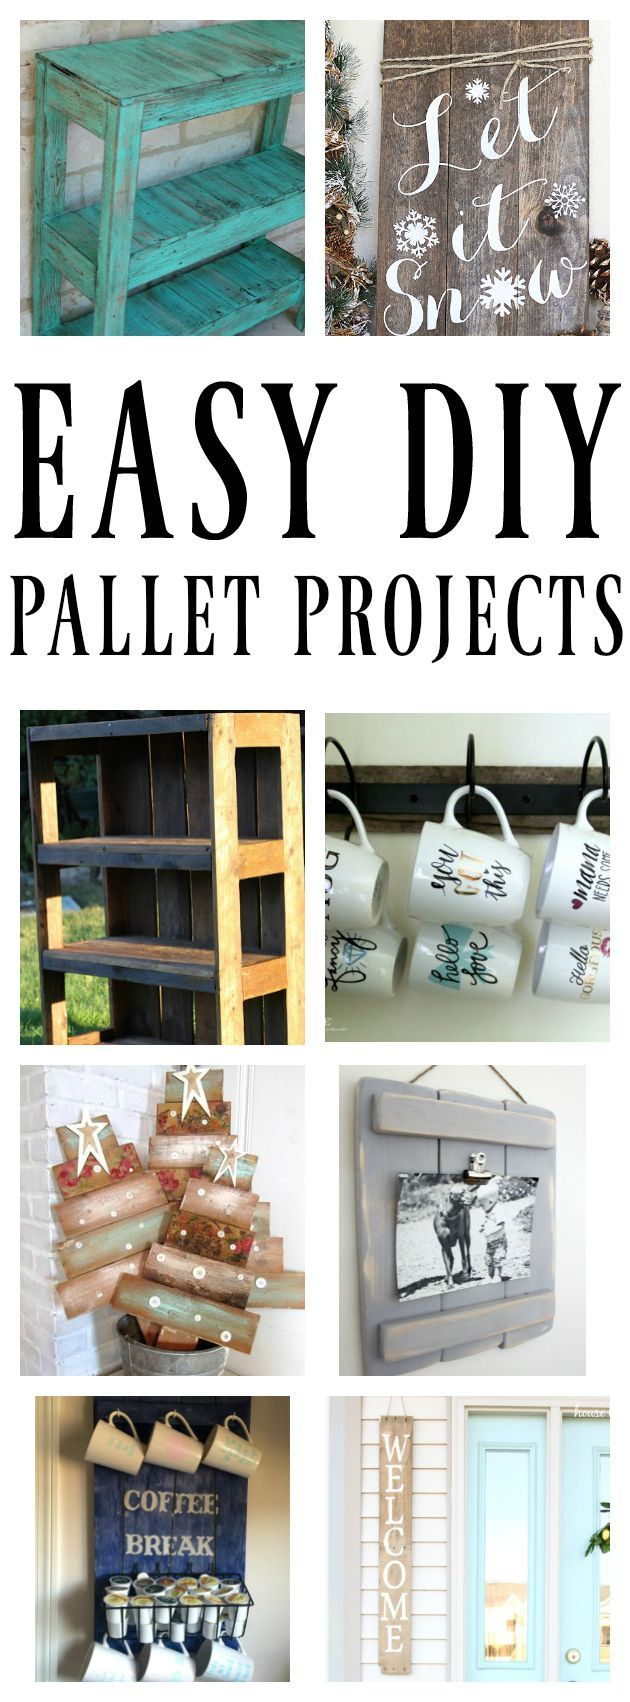 Info's : Easy DIY Pallet Projects